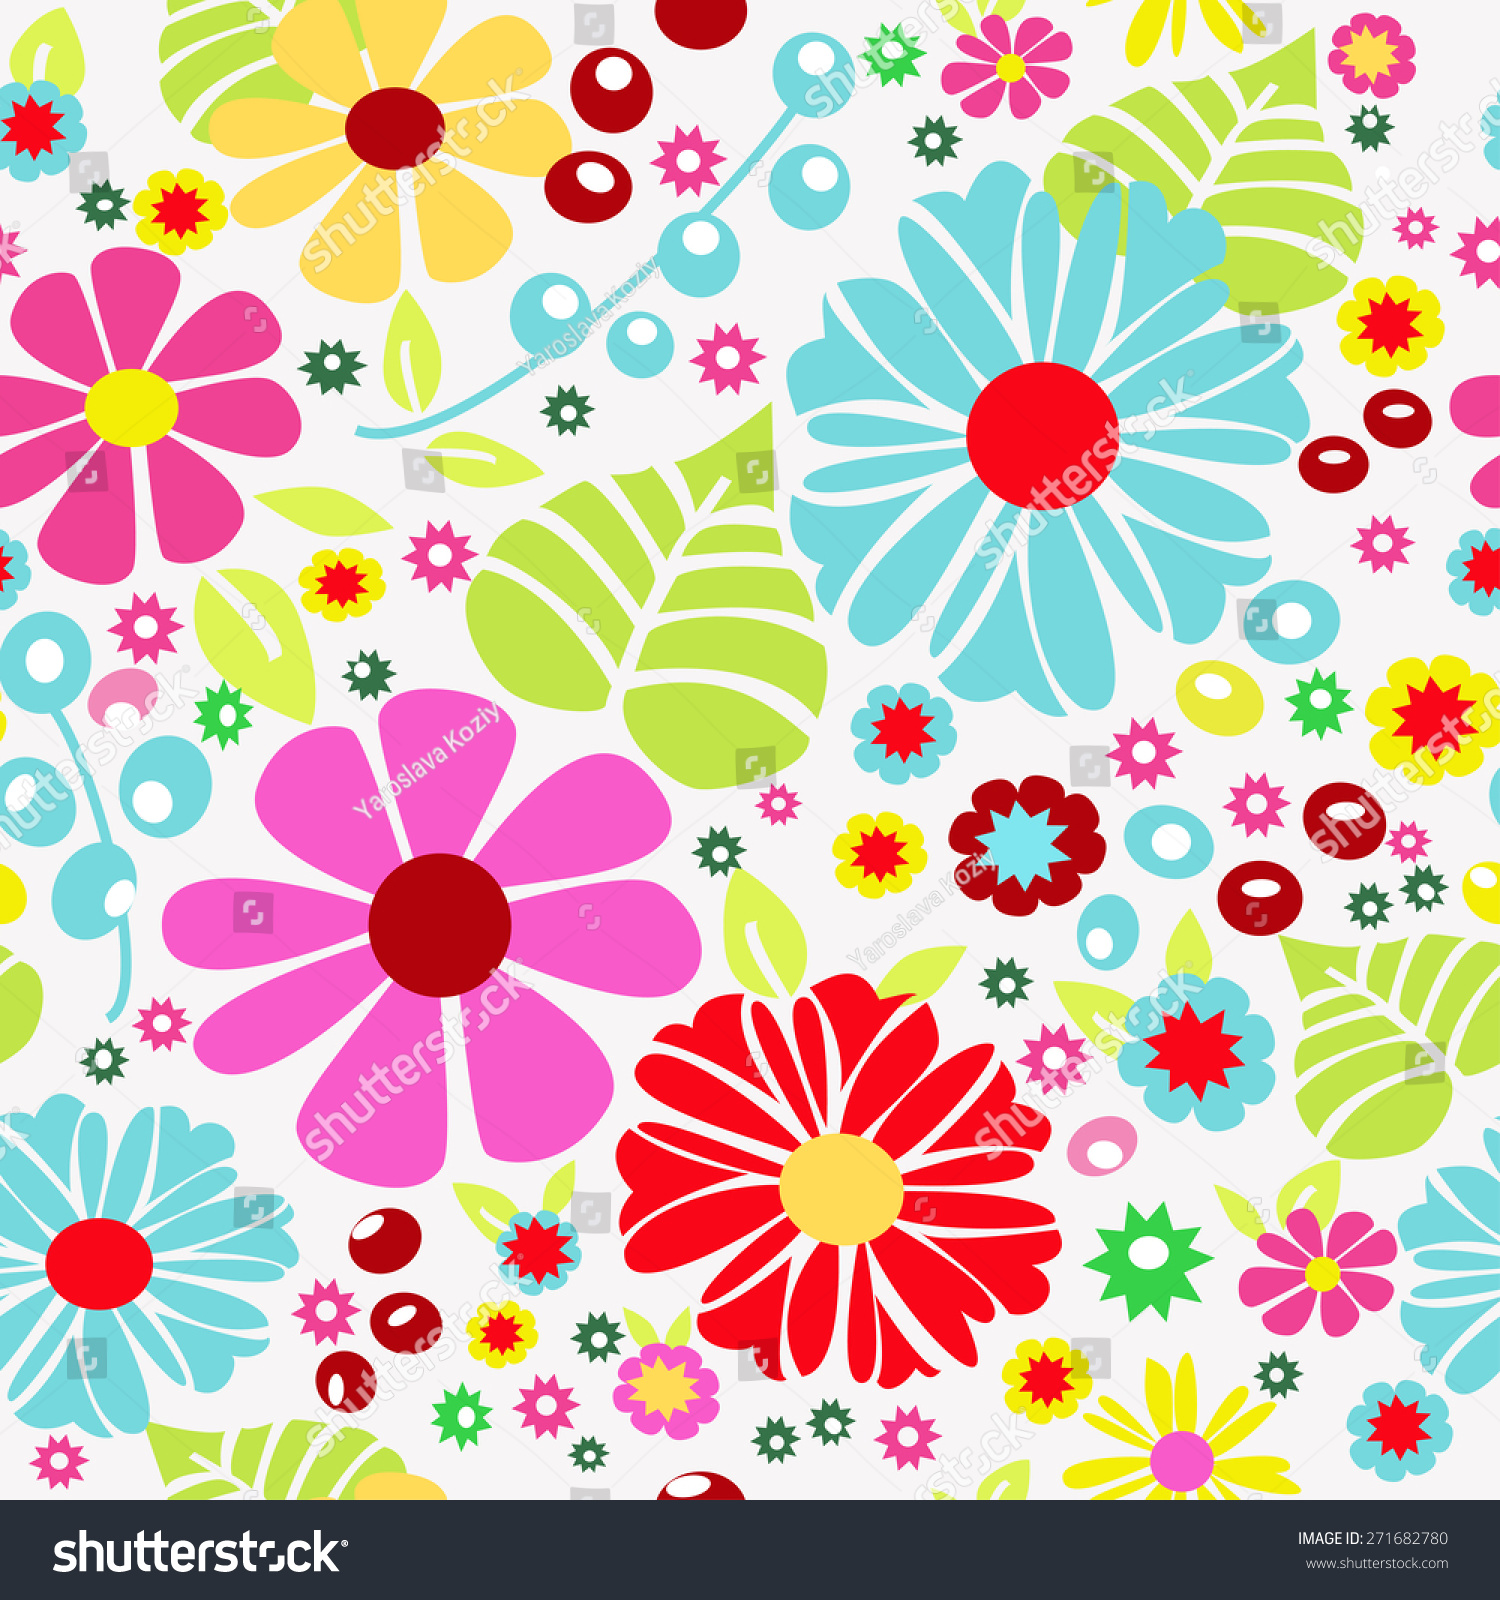 Scrapbook paper as wallpaper - Colorful Background Can Be Used For Wallpaper Fabric Print